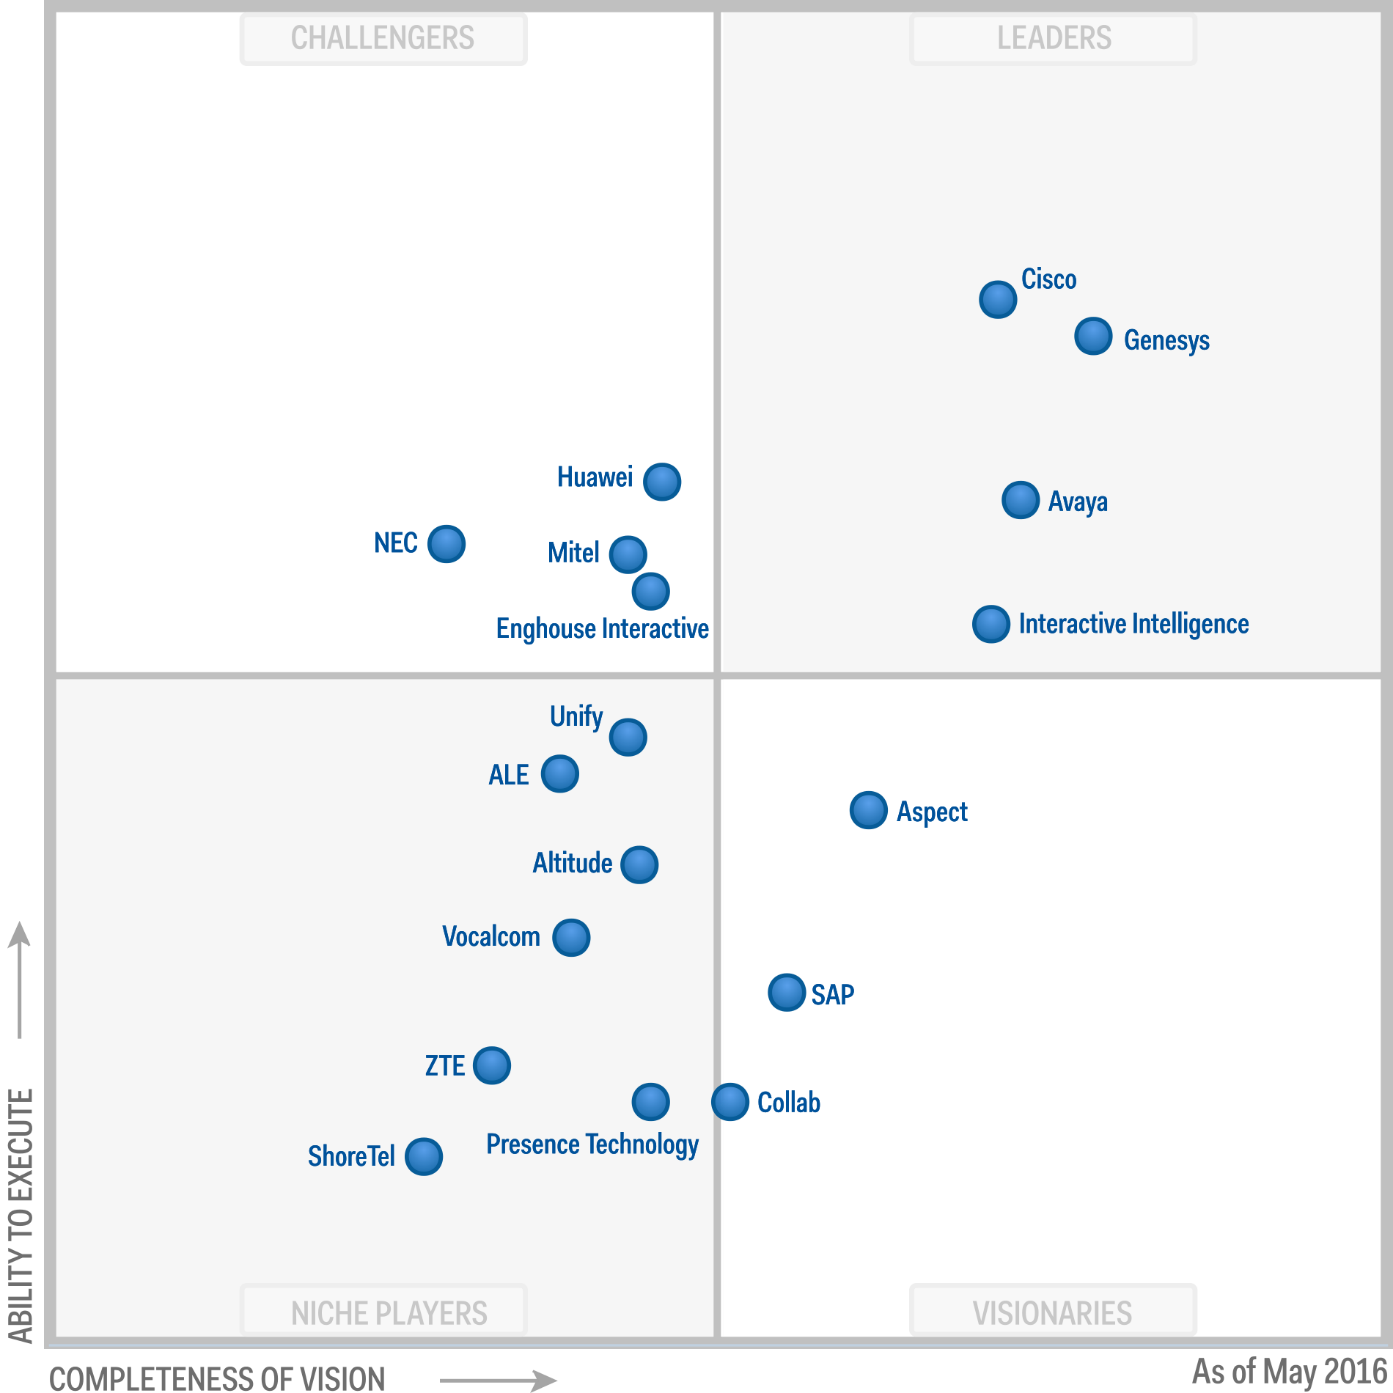 Magic Quadrant for Contact Center Infrastructure 2016 (G00278585)